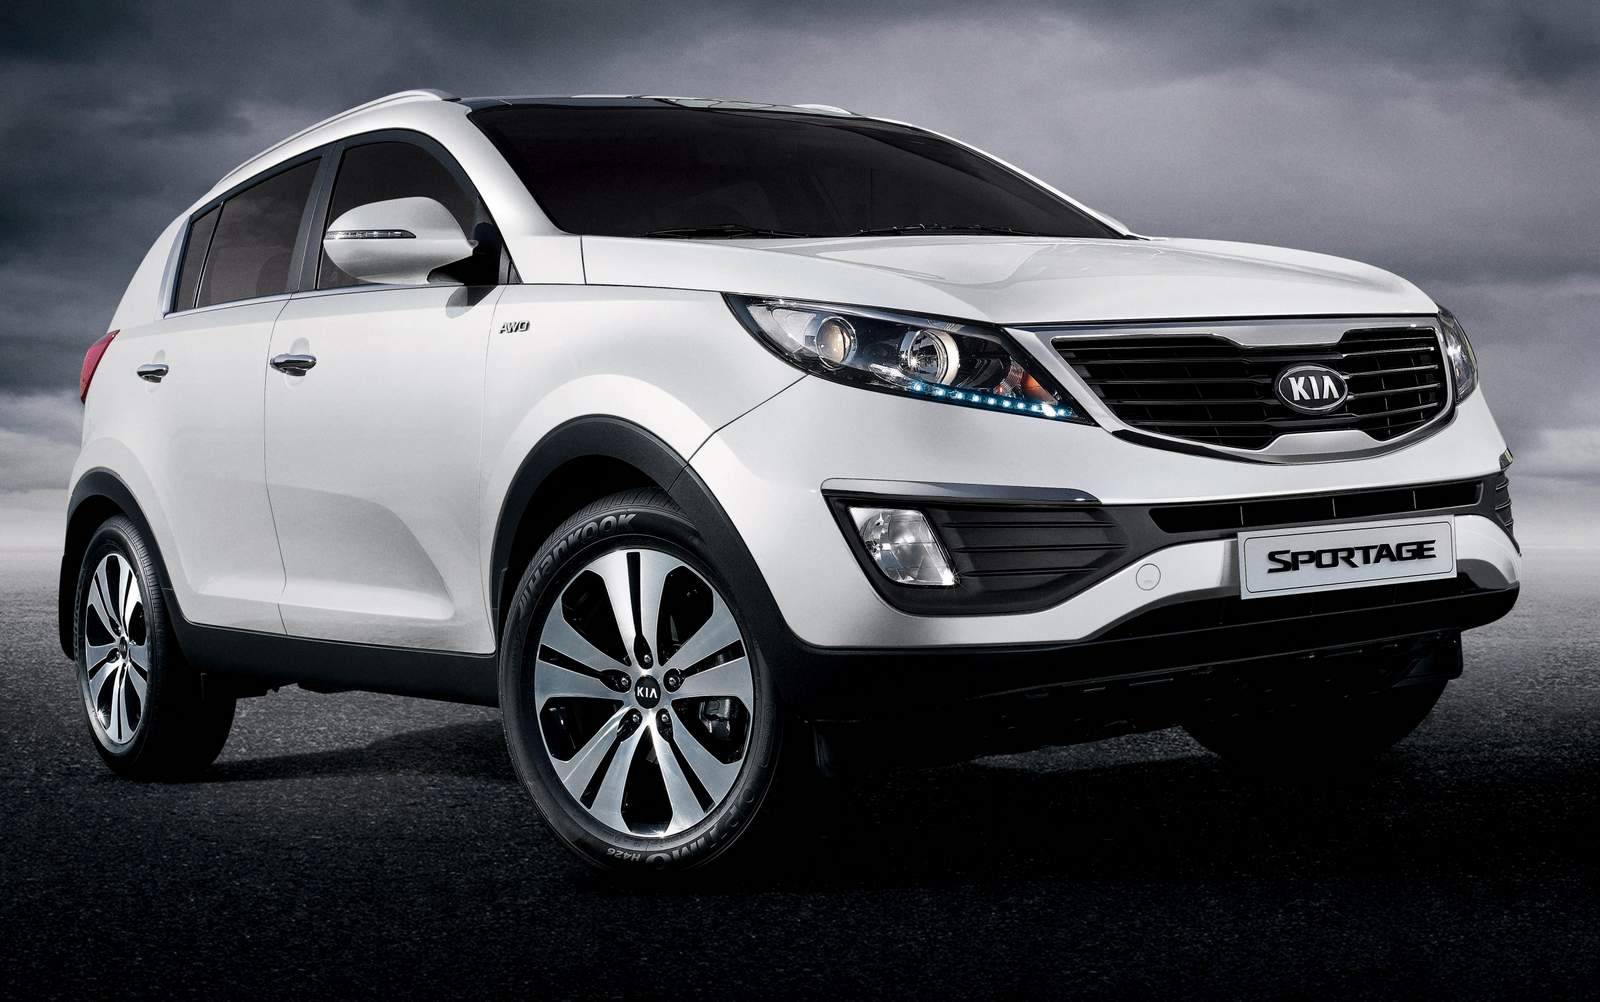 kia sportage 2015 tem pre o reduzido para r 101 9 mil car blog br. Black Bedroom Furniture Sets. Home Design Ideas